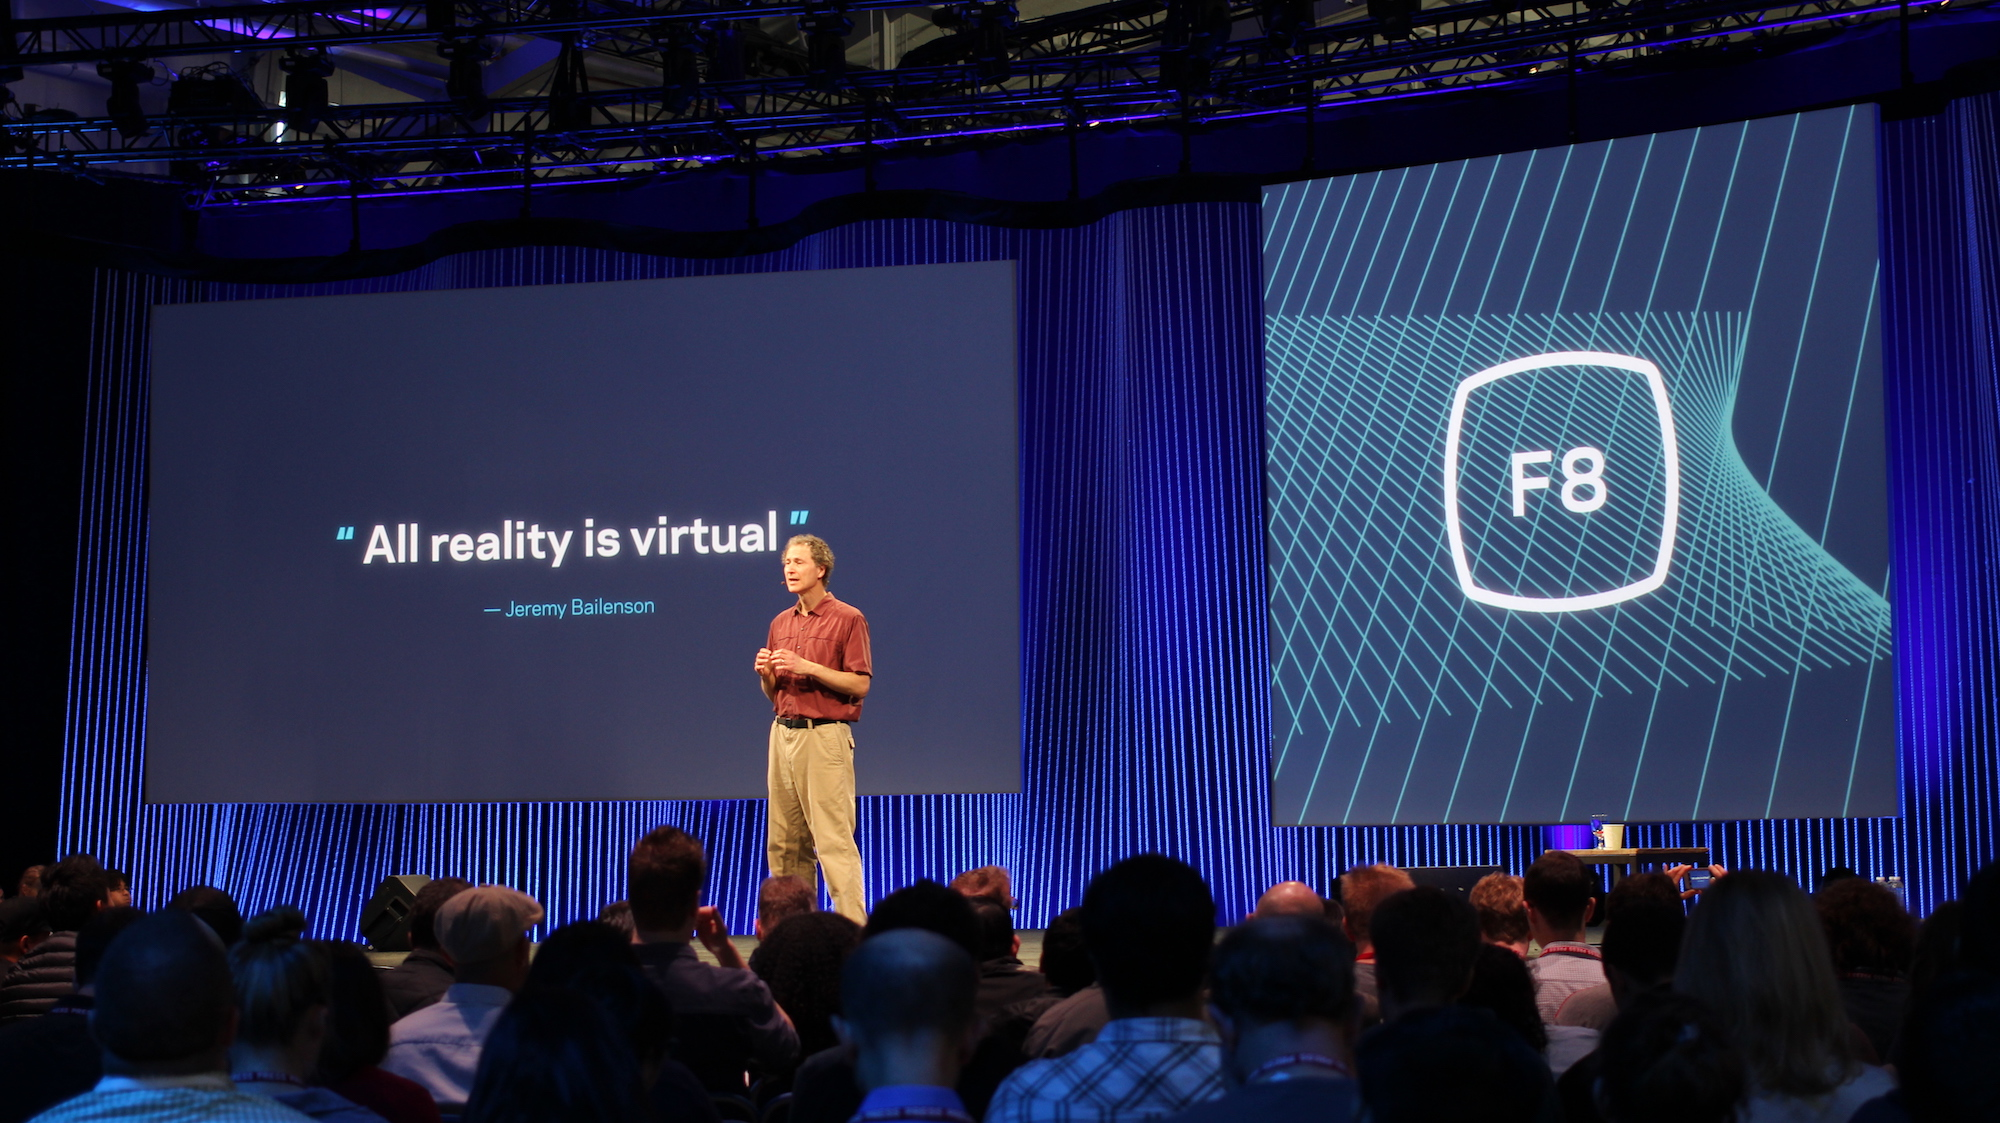 Oculus chief scientist Michael Abrash on stage at Facebook's F8 2015